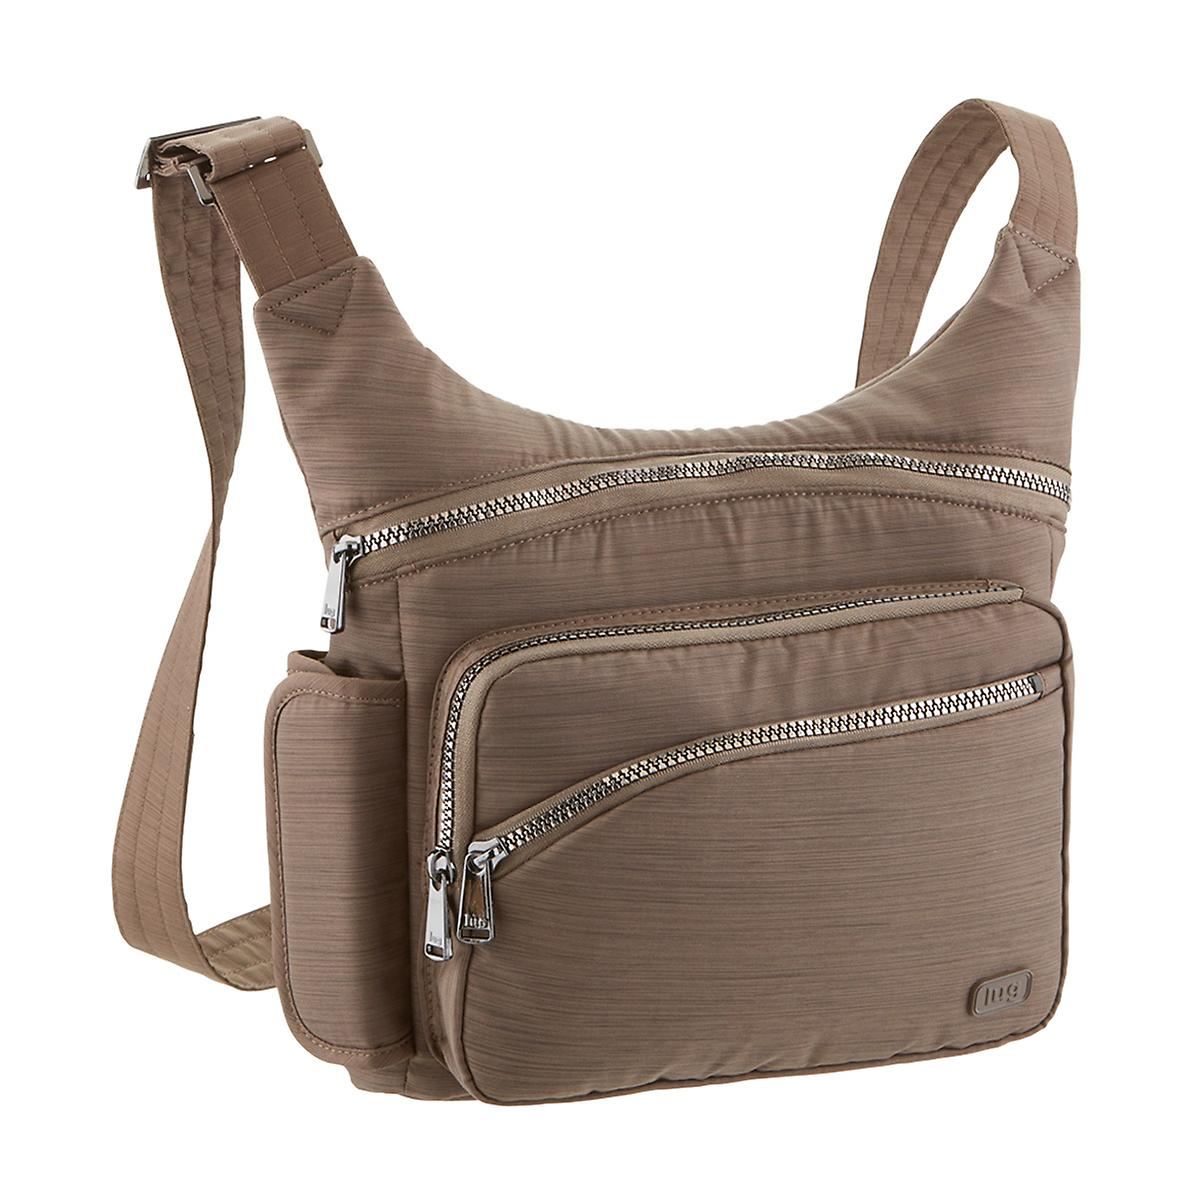 Lug Walnut Sidekick Excursion Bag